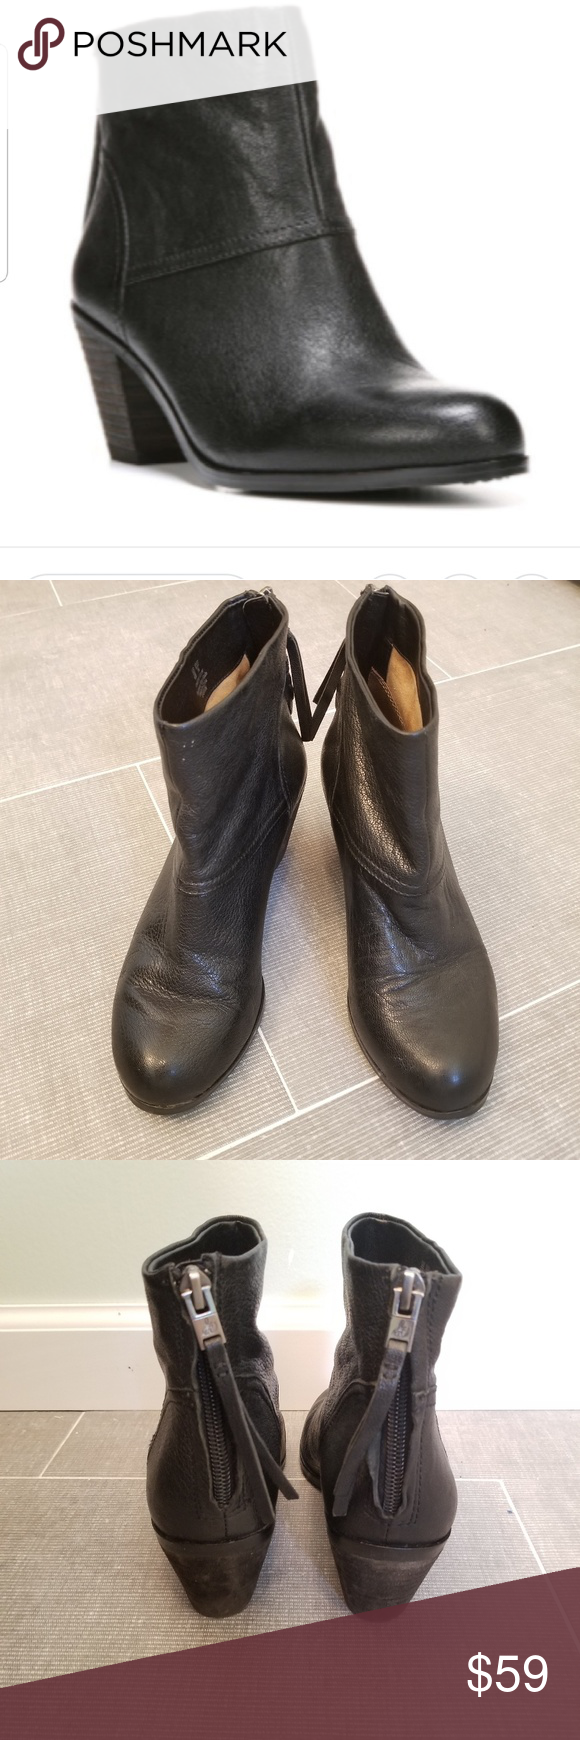 419ba0e60adc2d Sam Edelman Larkin Black Leather Ankle Bootie 6 By Sam Edelman these are  the Larkin Round